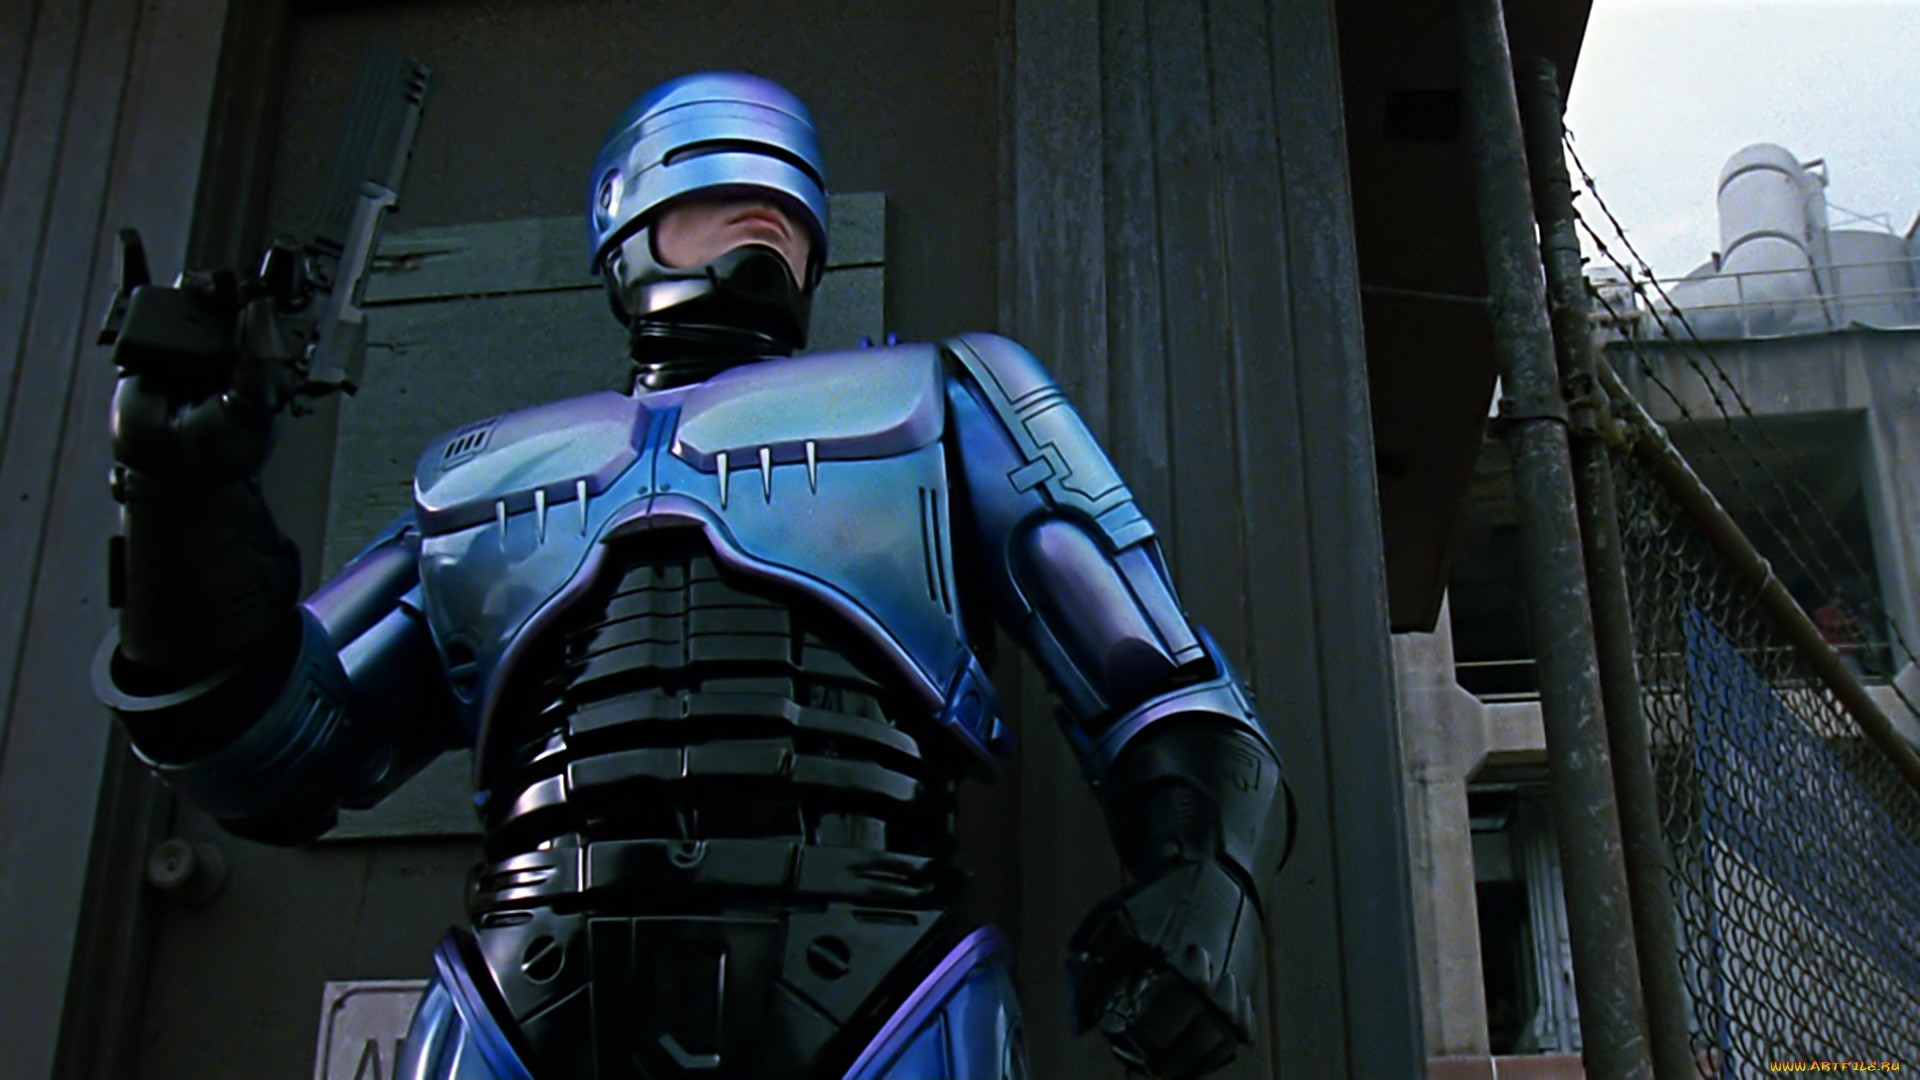 Hot Toys U2013 MMS202D04   1/6th Scale RoboCop Collectible Figure [Archive]    Page 38   Sideshow Freaks